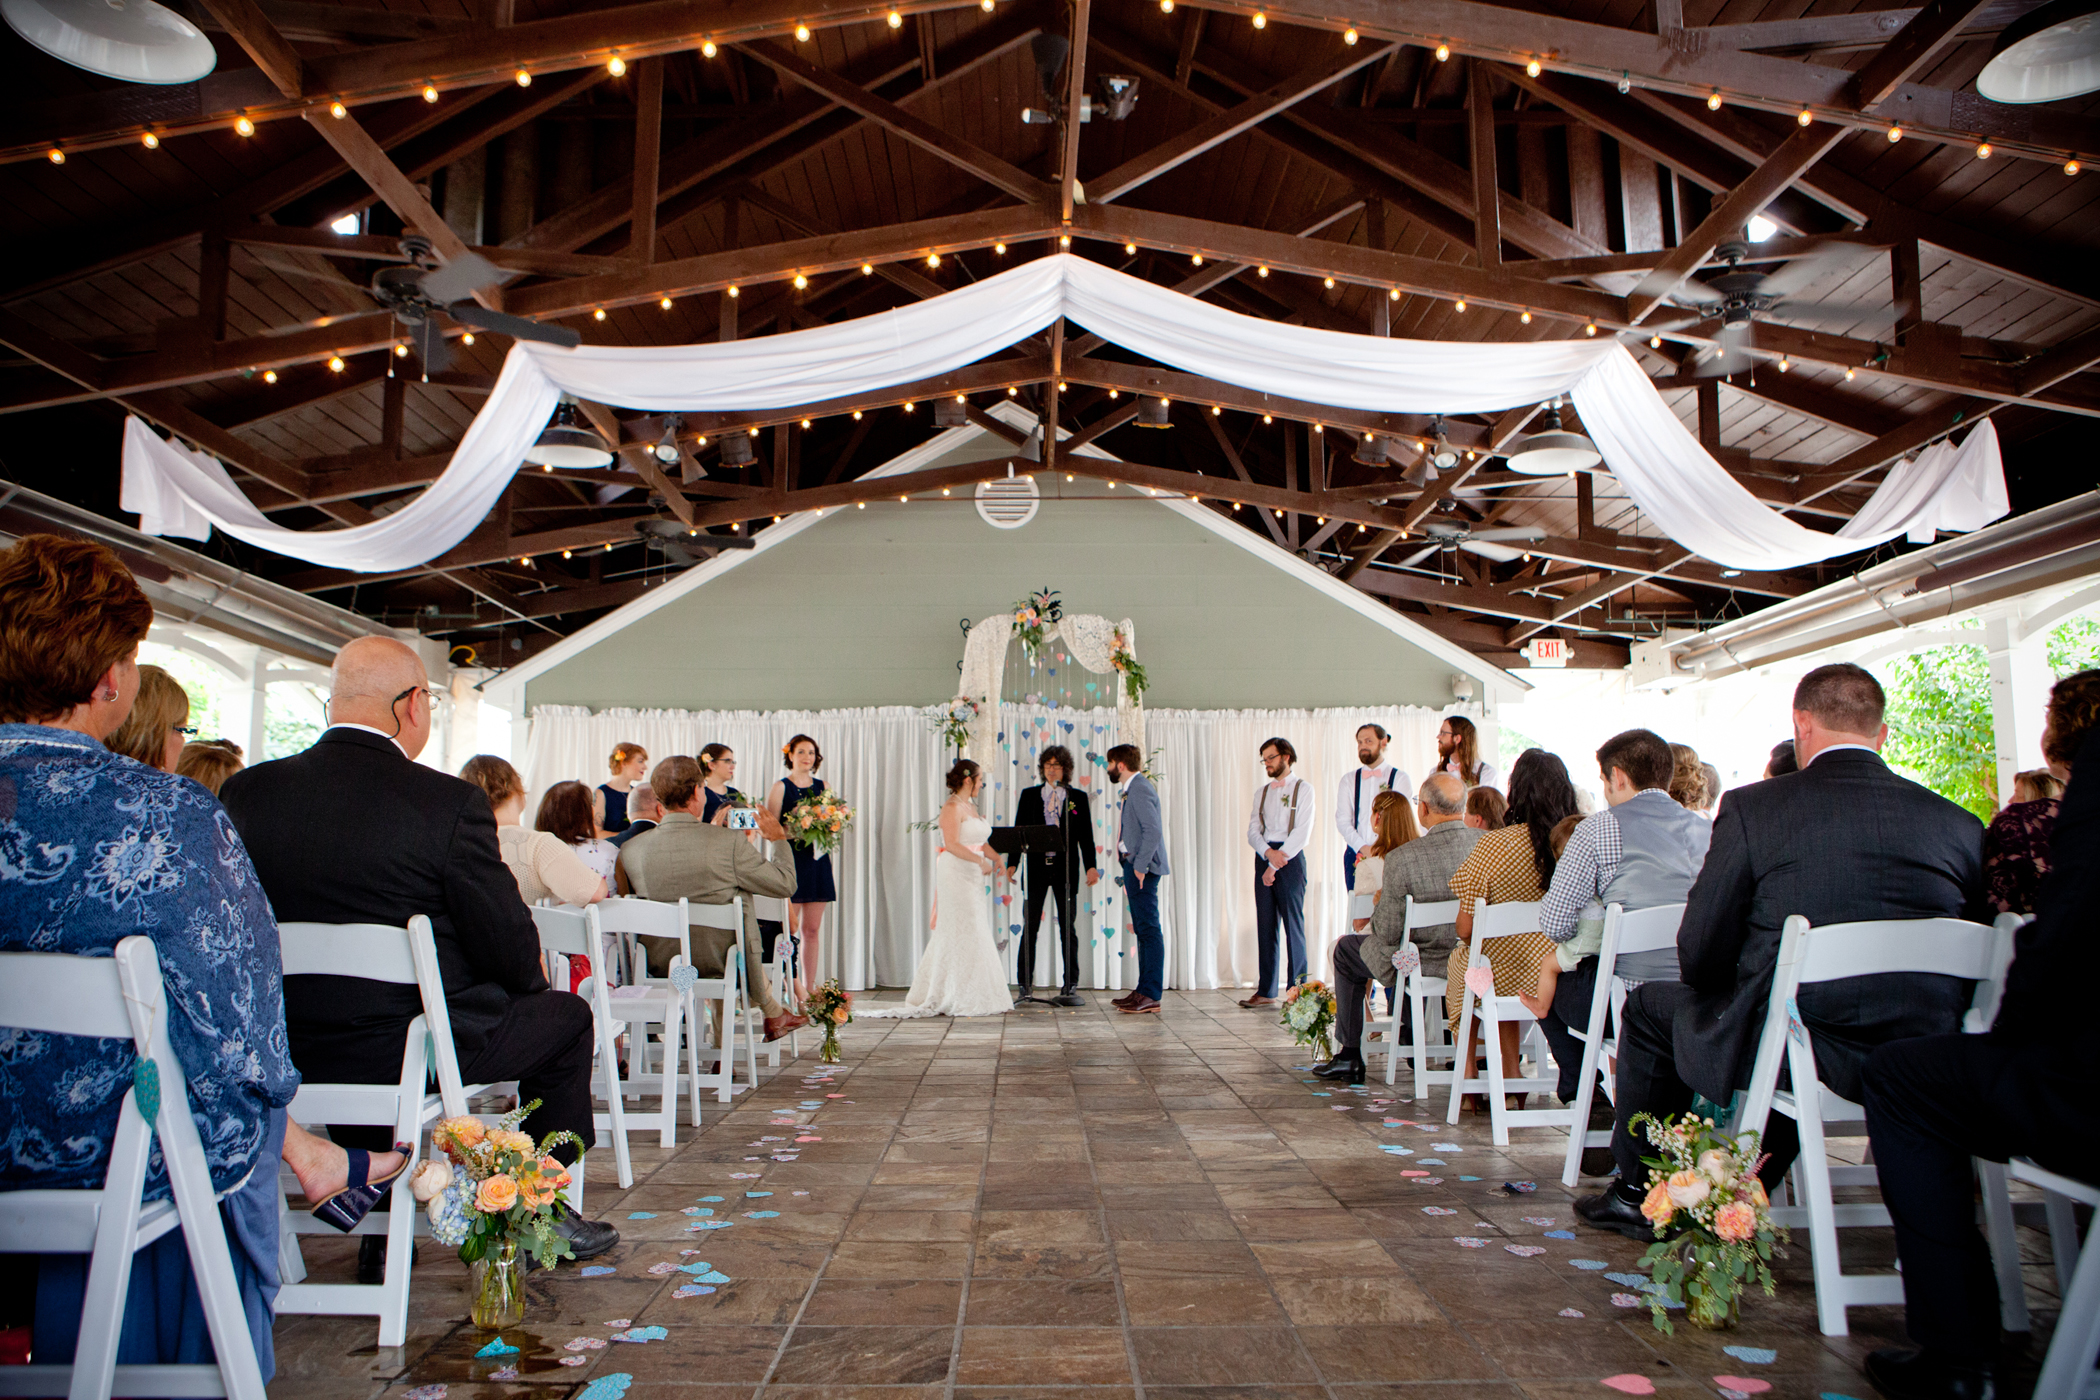 Athens Wedding Planners | Wedding Venues in Athens | Day-of Coordinators | Athens Georgia | Graduate Athens | Ashley Rae Events